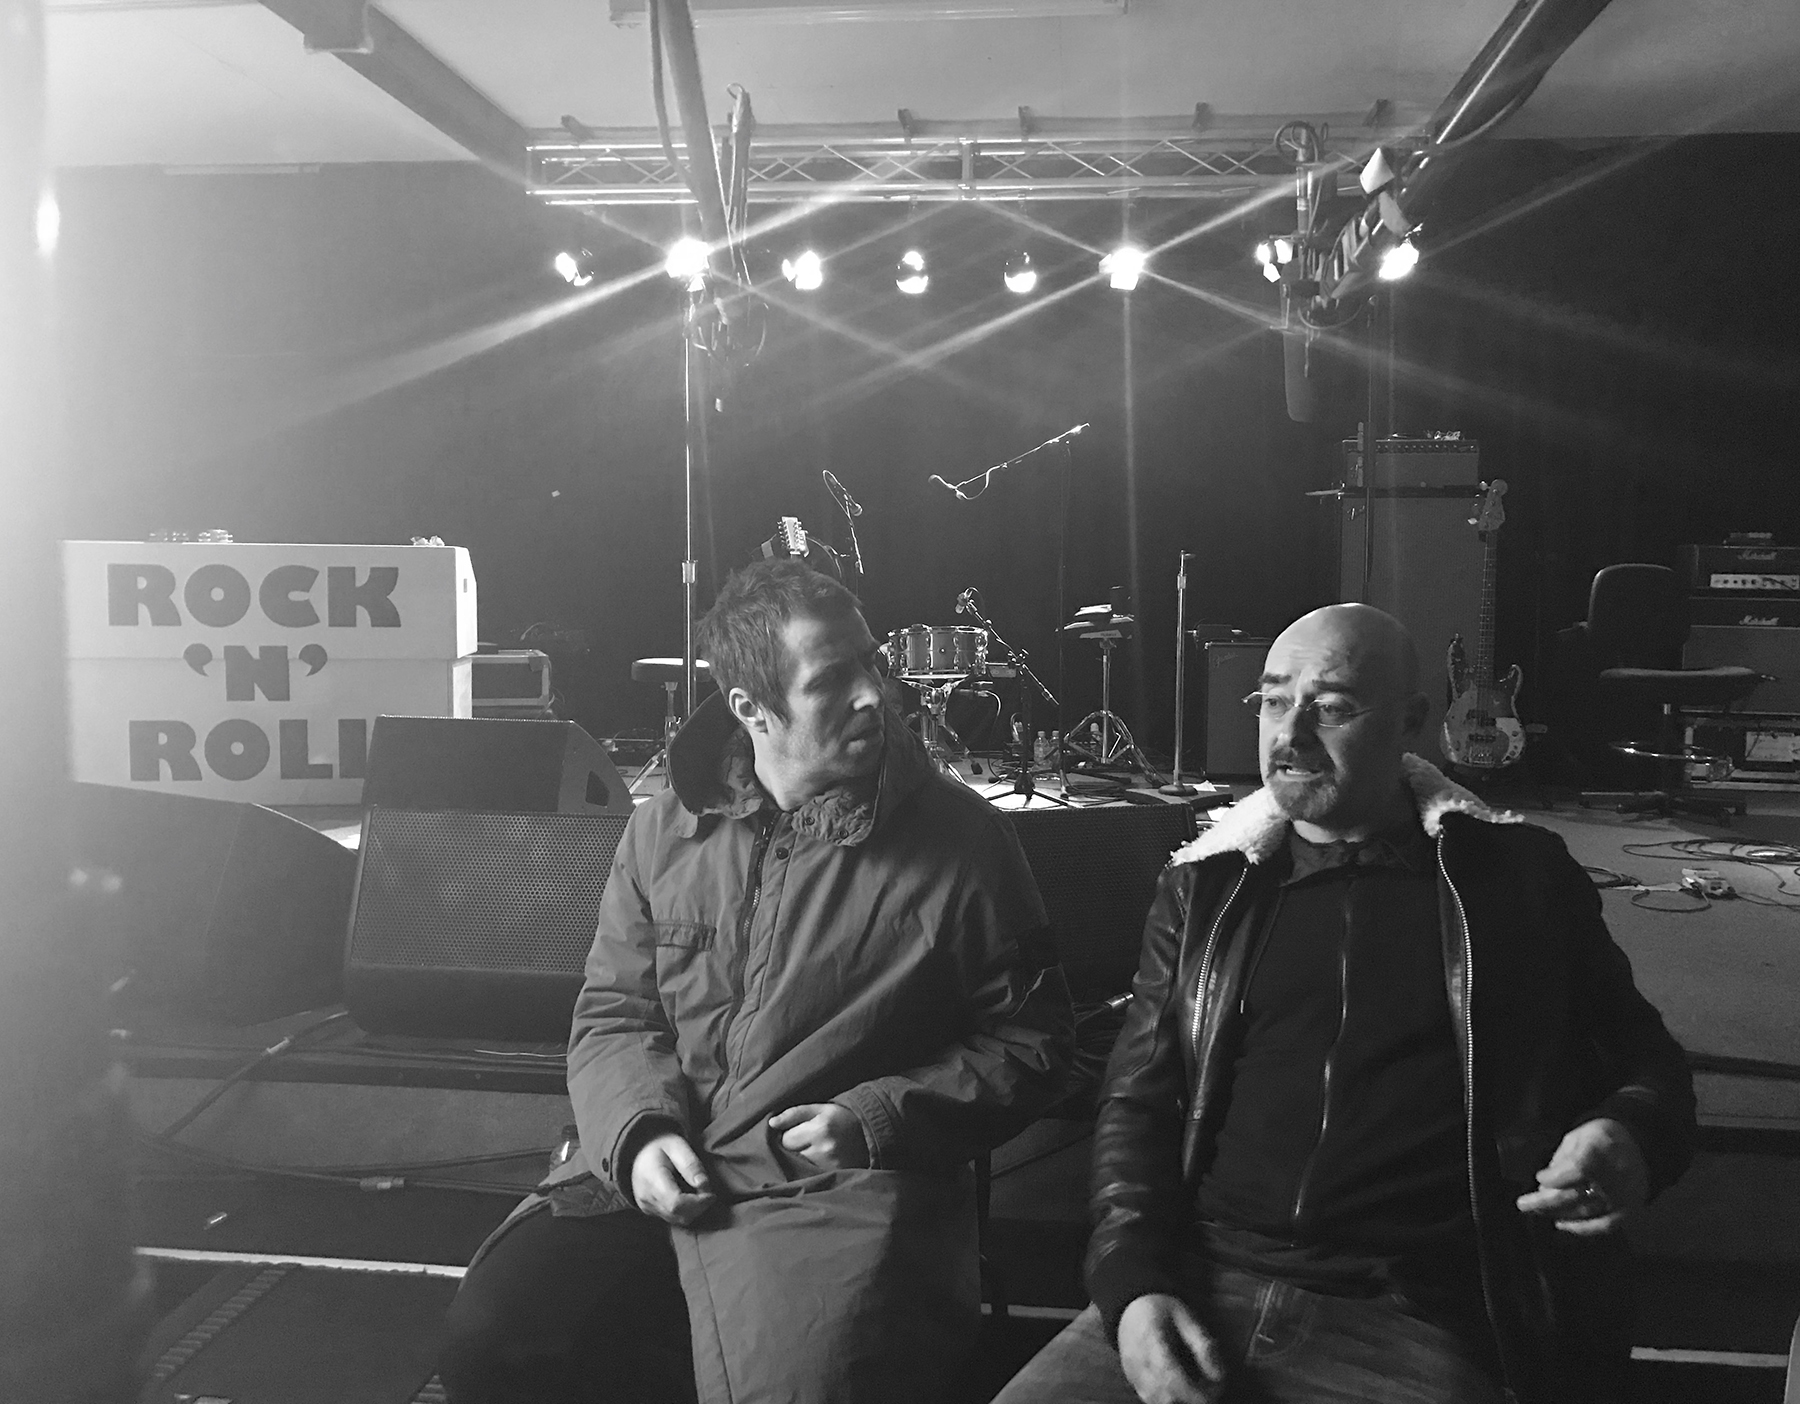 Rockfield - Groupes et histoires - Liam Gallagher and Bonehead_(c)ie ie productions